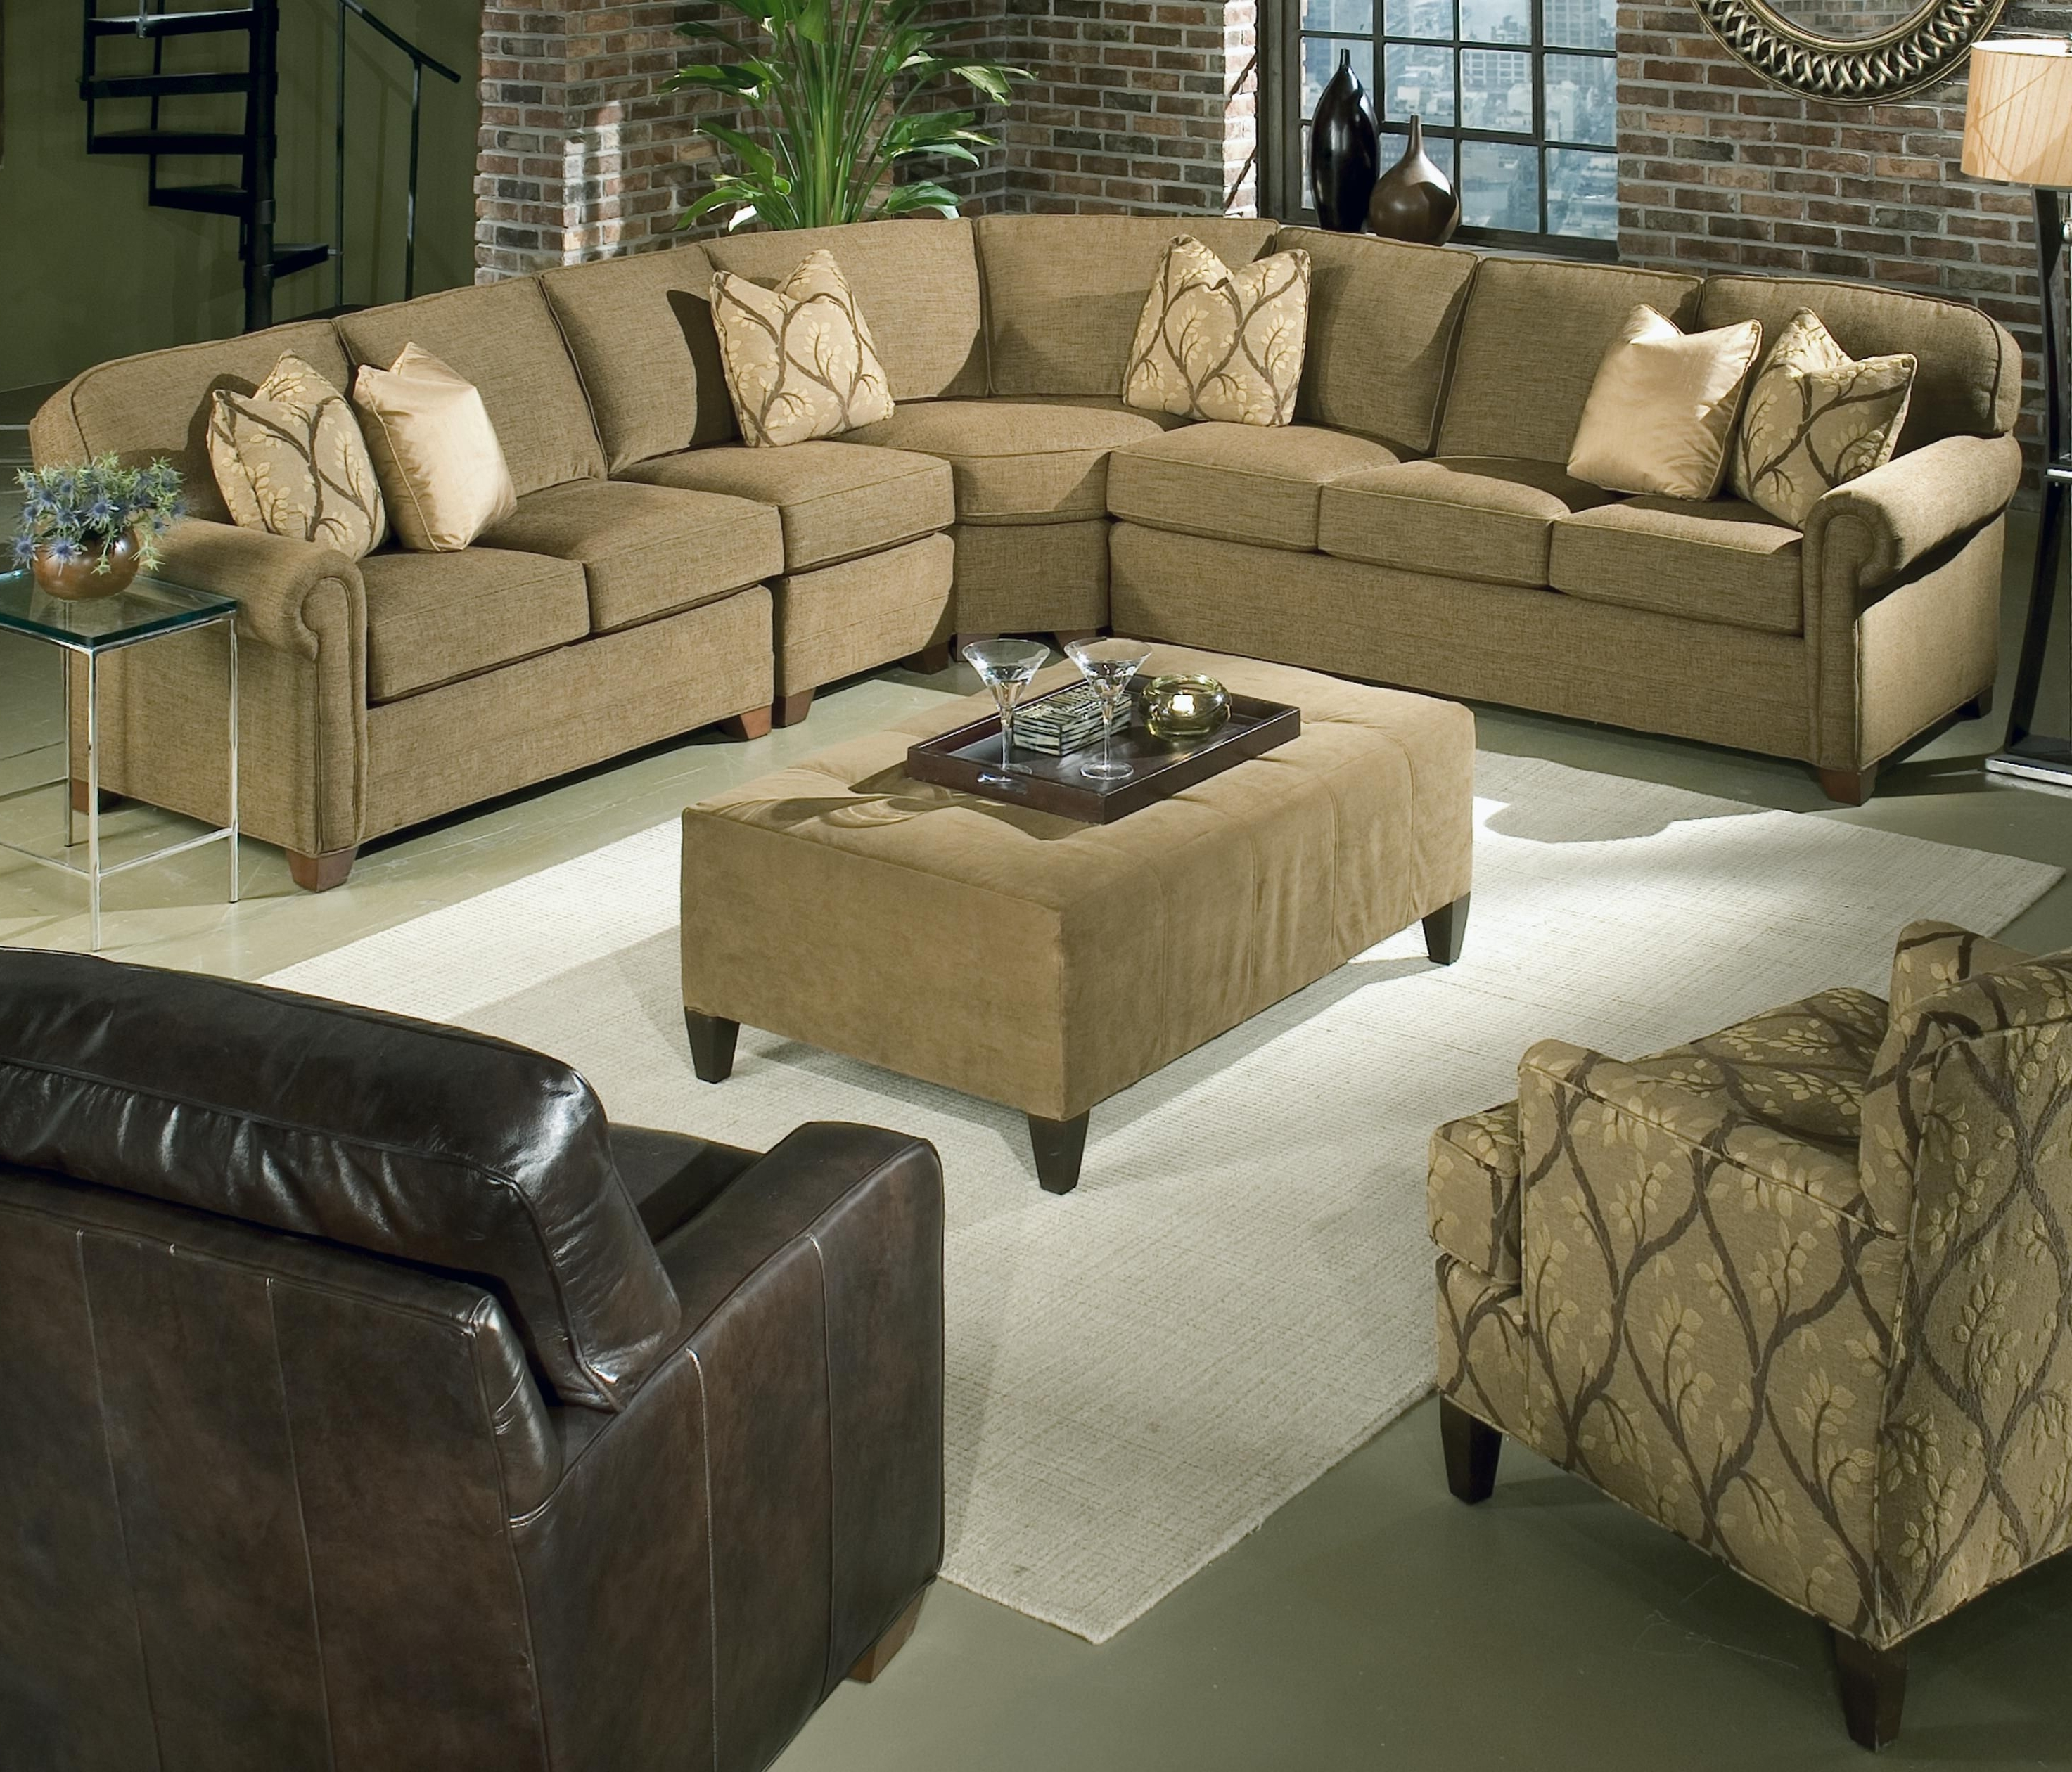 All Things Softball Intended For Customizable Sectional Sofas (View 1 of 15)